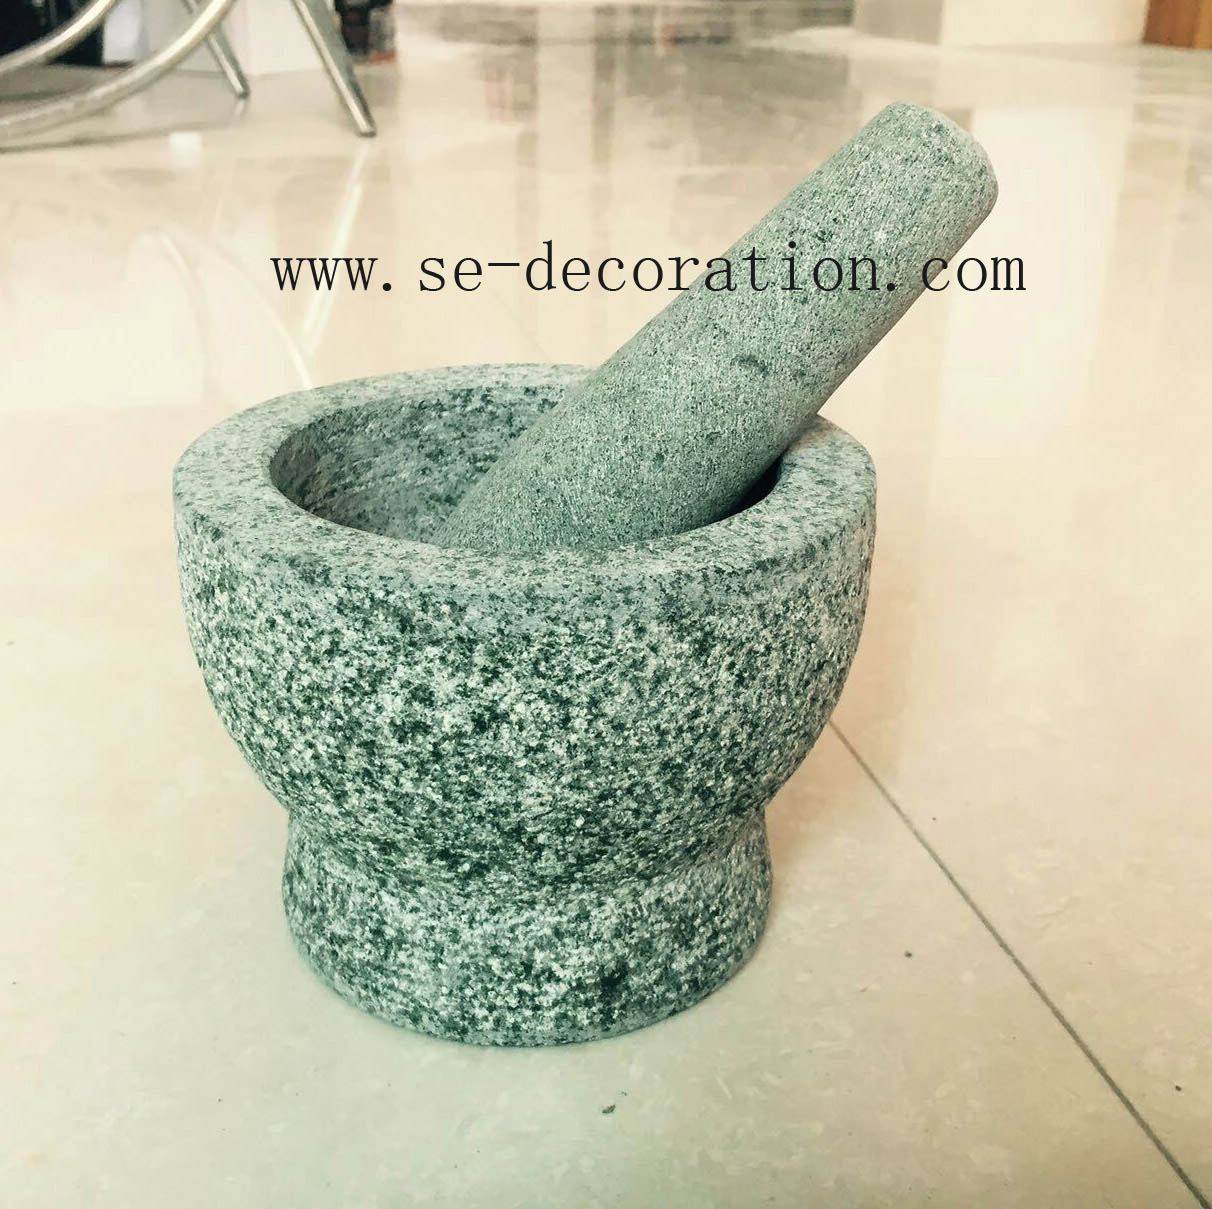 Product name:Mortar & Pestle 2